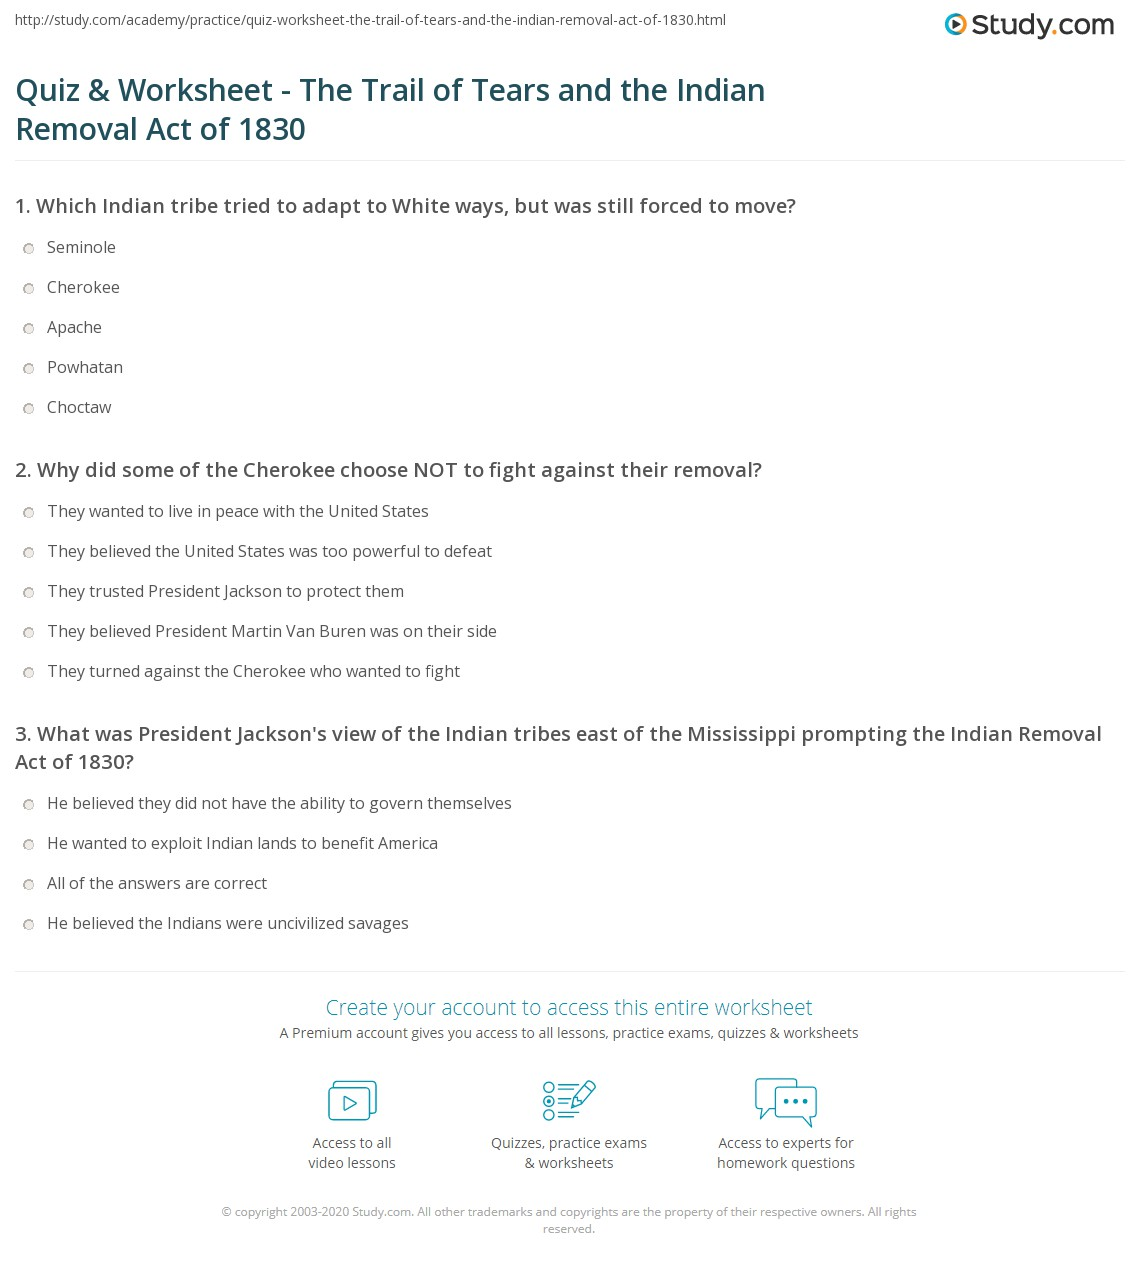 hight resolution of Quiz \u0026 Worksheet - The Trail of Tears and the Indian Removal Act of 1830    Study.com